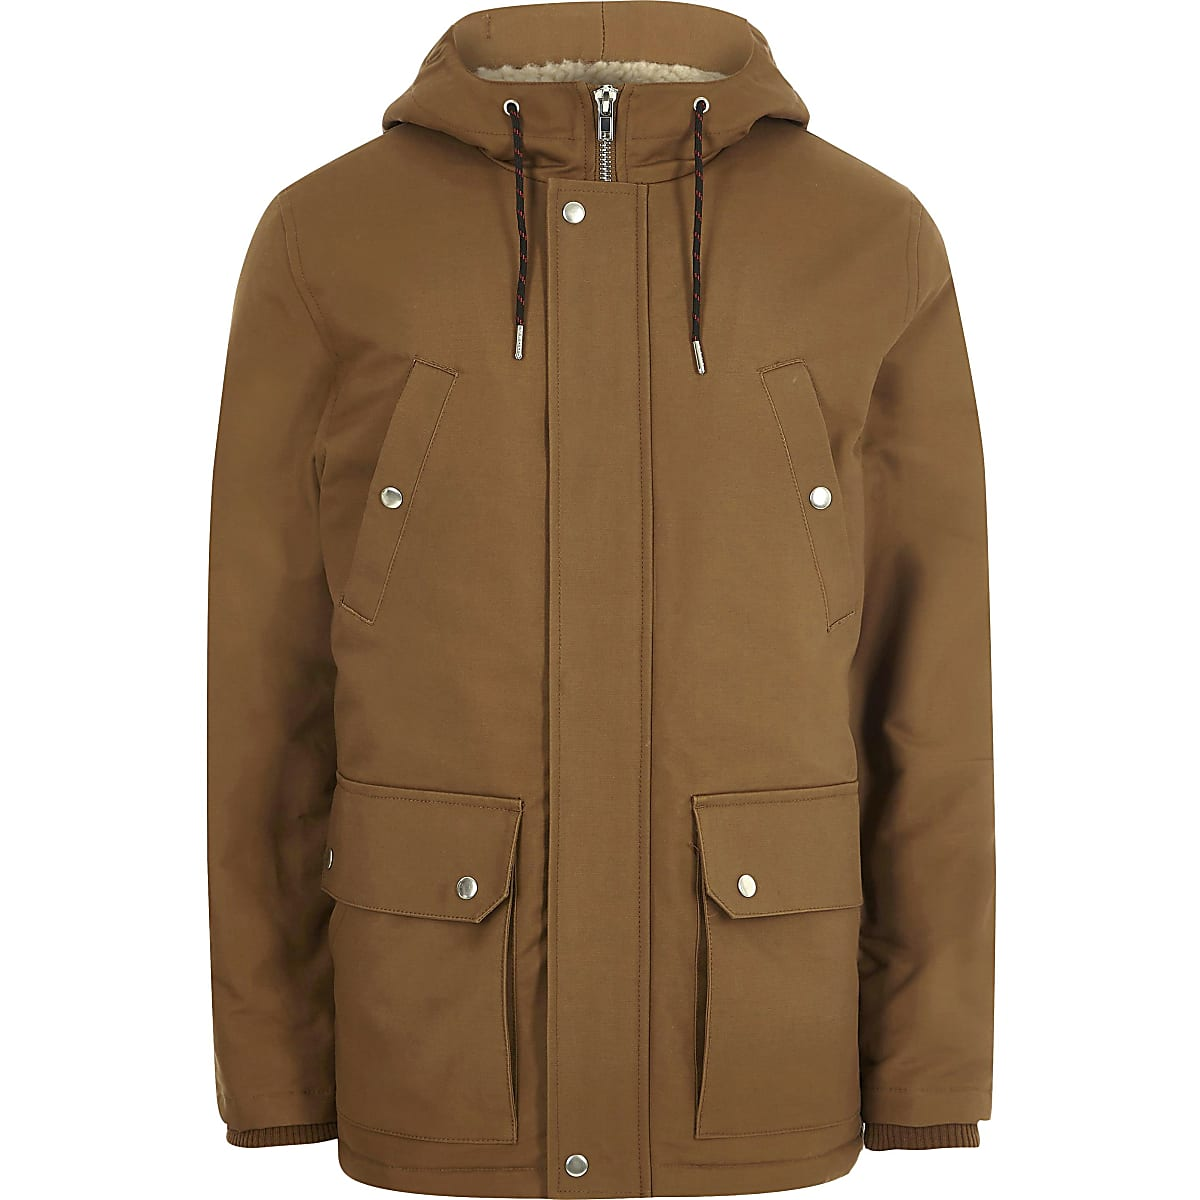 Big and Tall brown hooded borg lined jacket